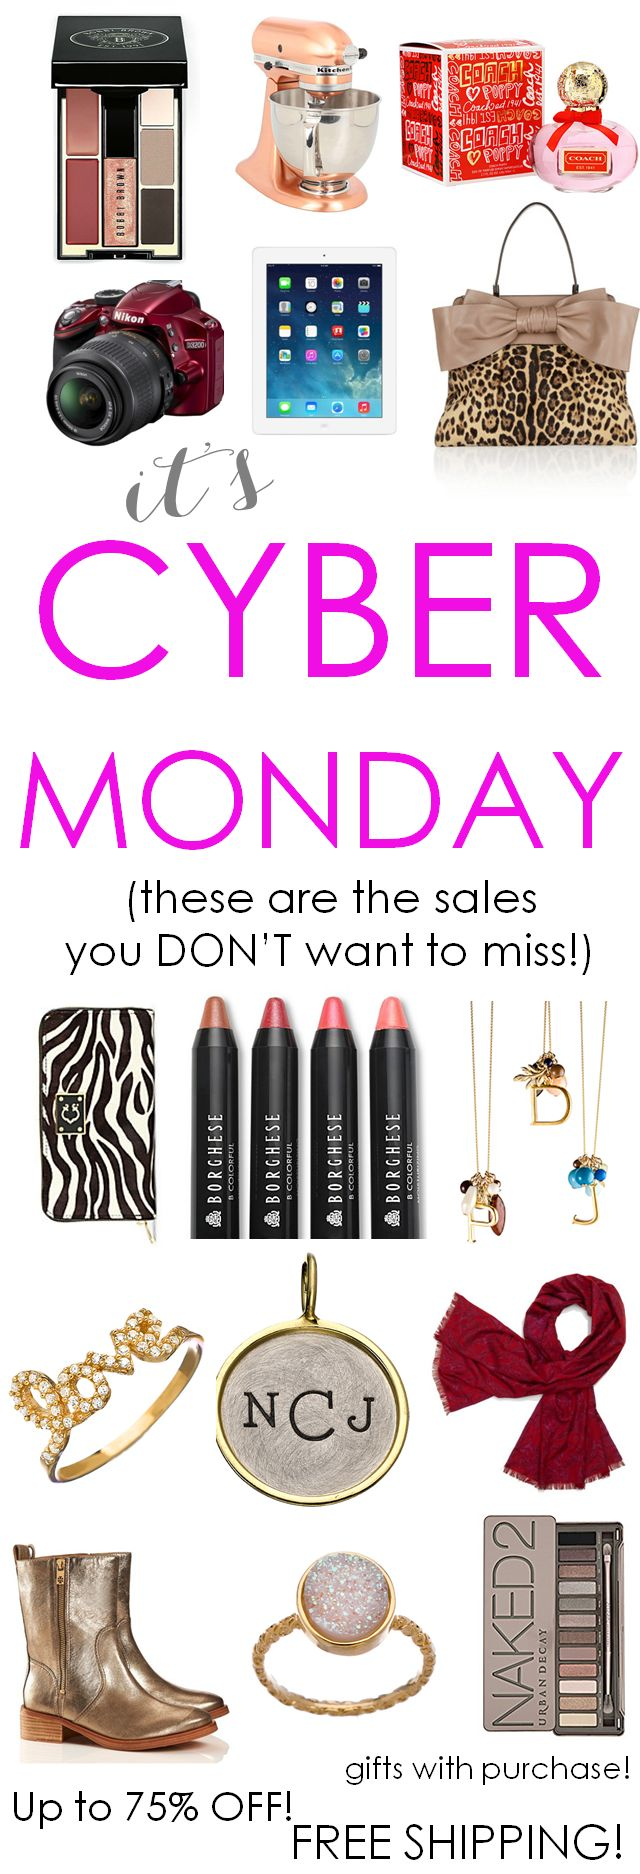 The Perfect Palette: Over 500 Gift Ideas for the Ladies in Your Life! Including ALL the best sale info for Cyber Monday!